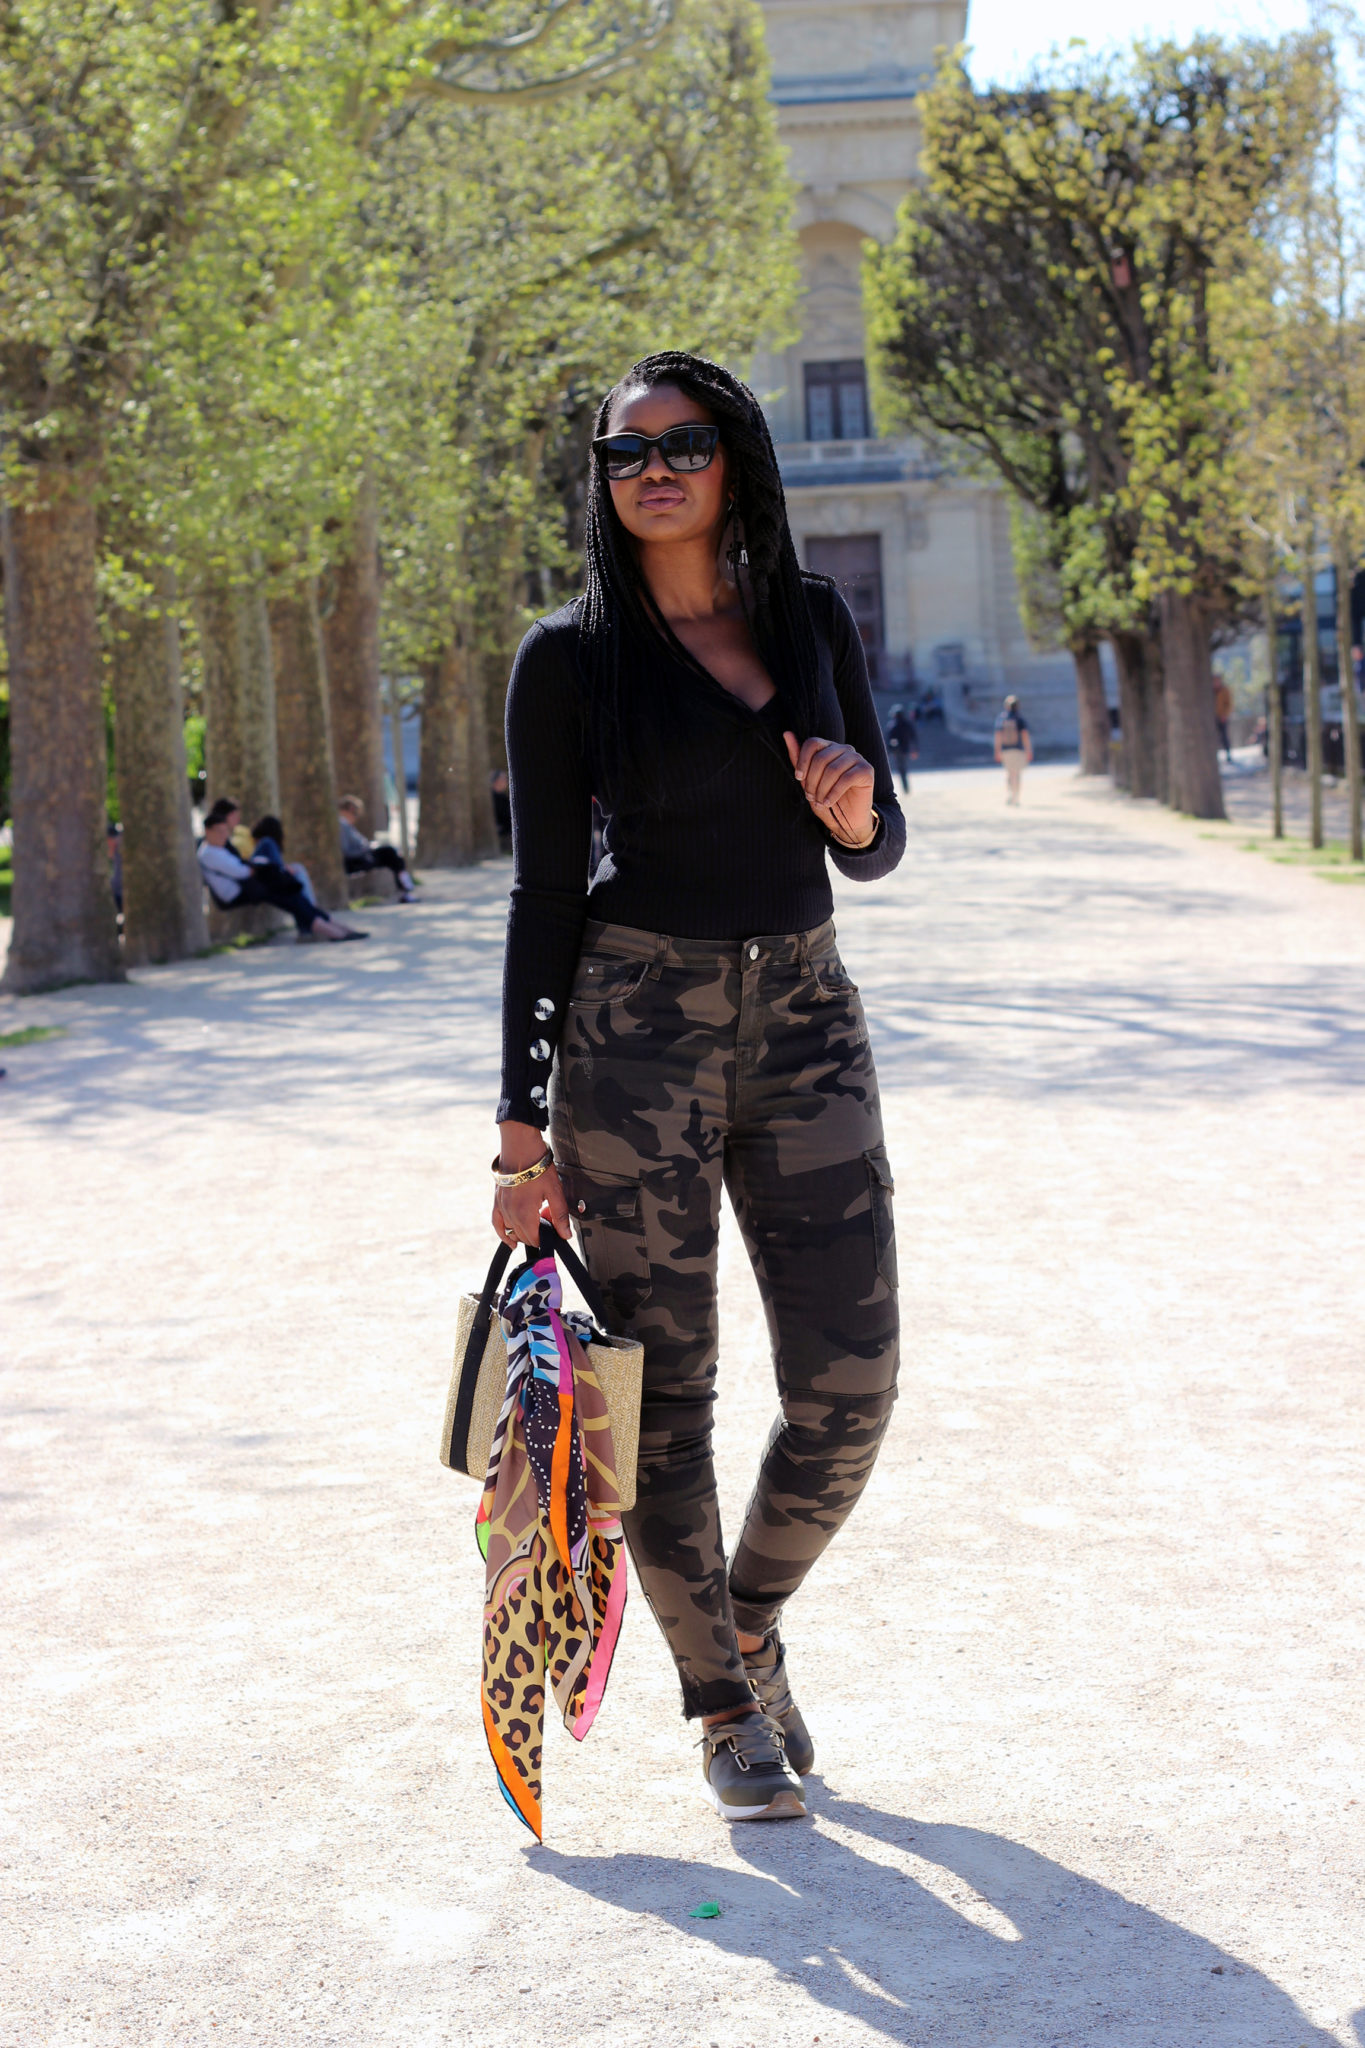 camouflage pantalon cargo militaire camo in the city 10